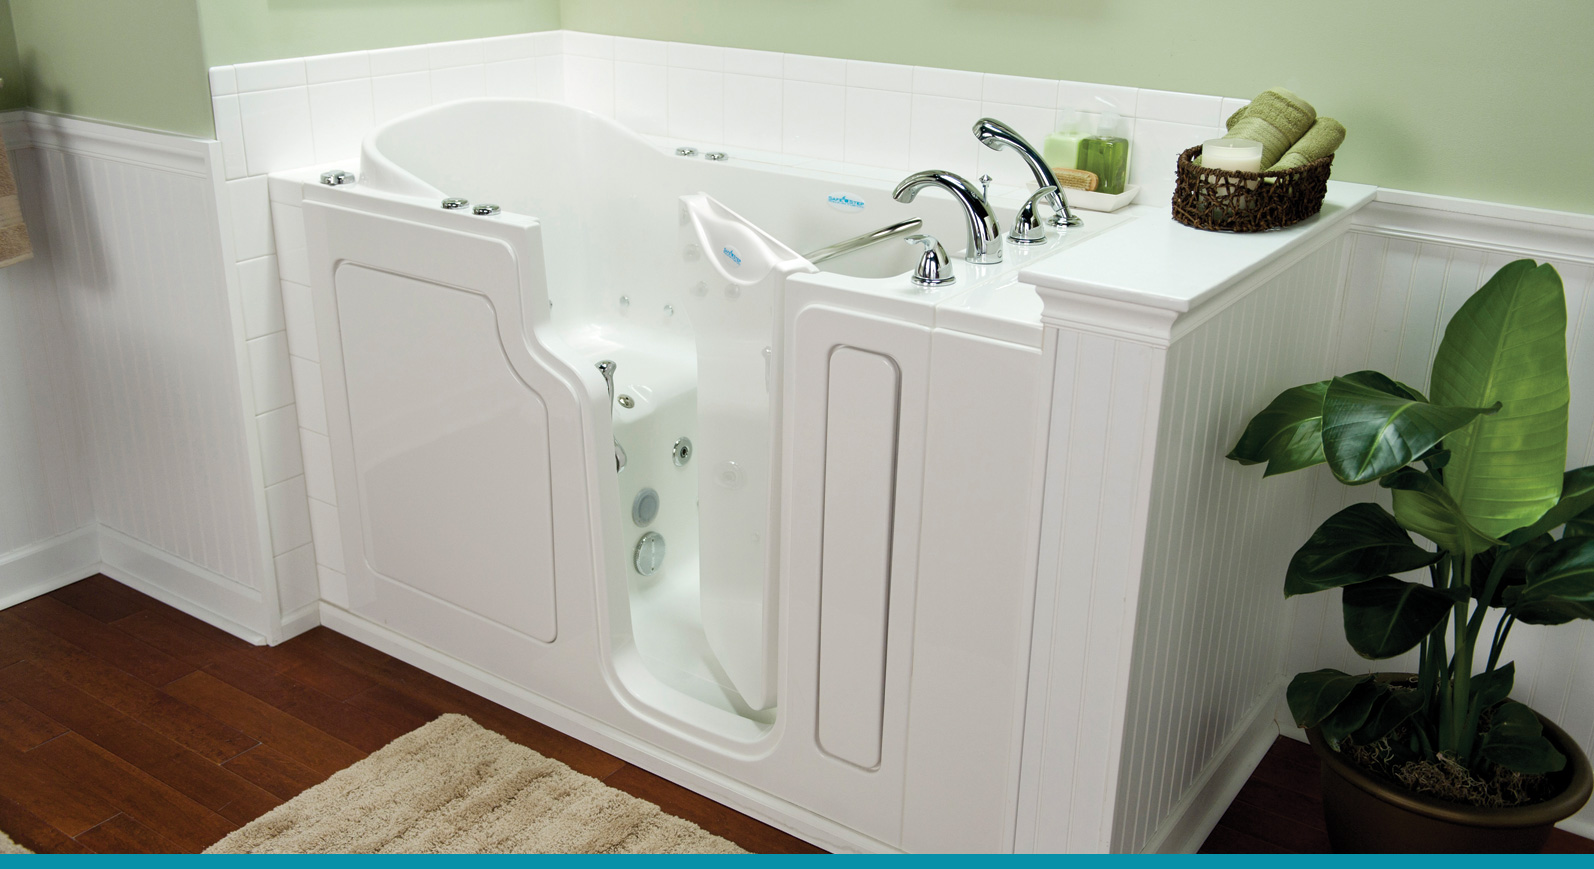 Canadian Safe Step Walk In Tub Co Delivers Life Changing